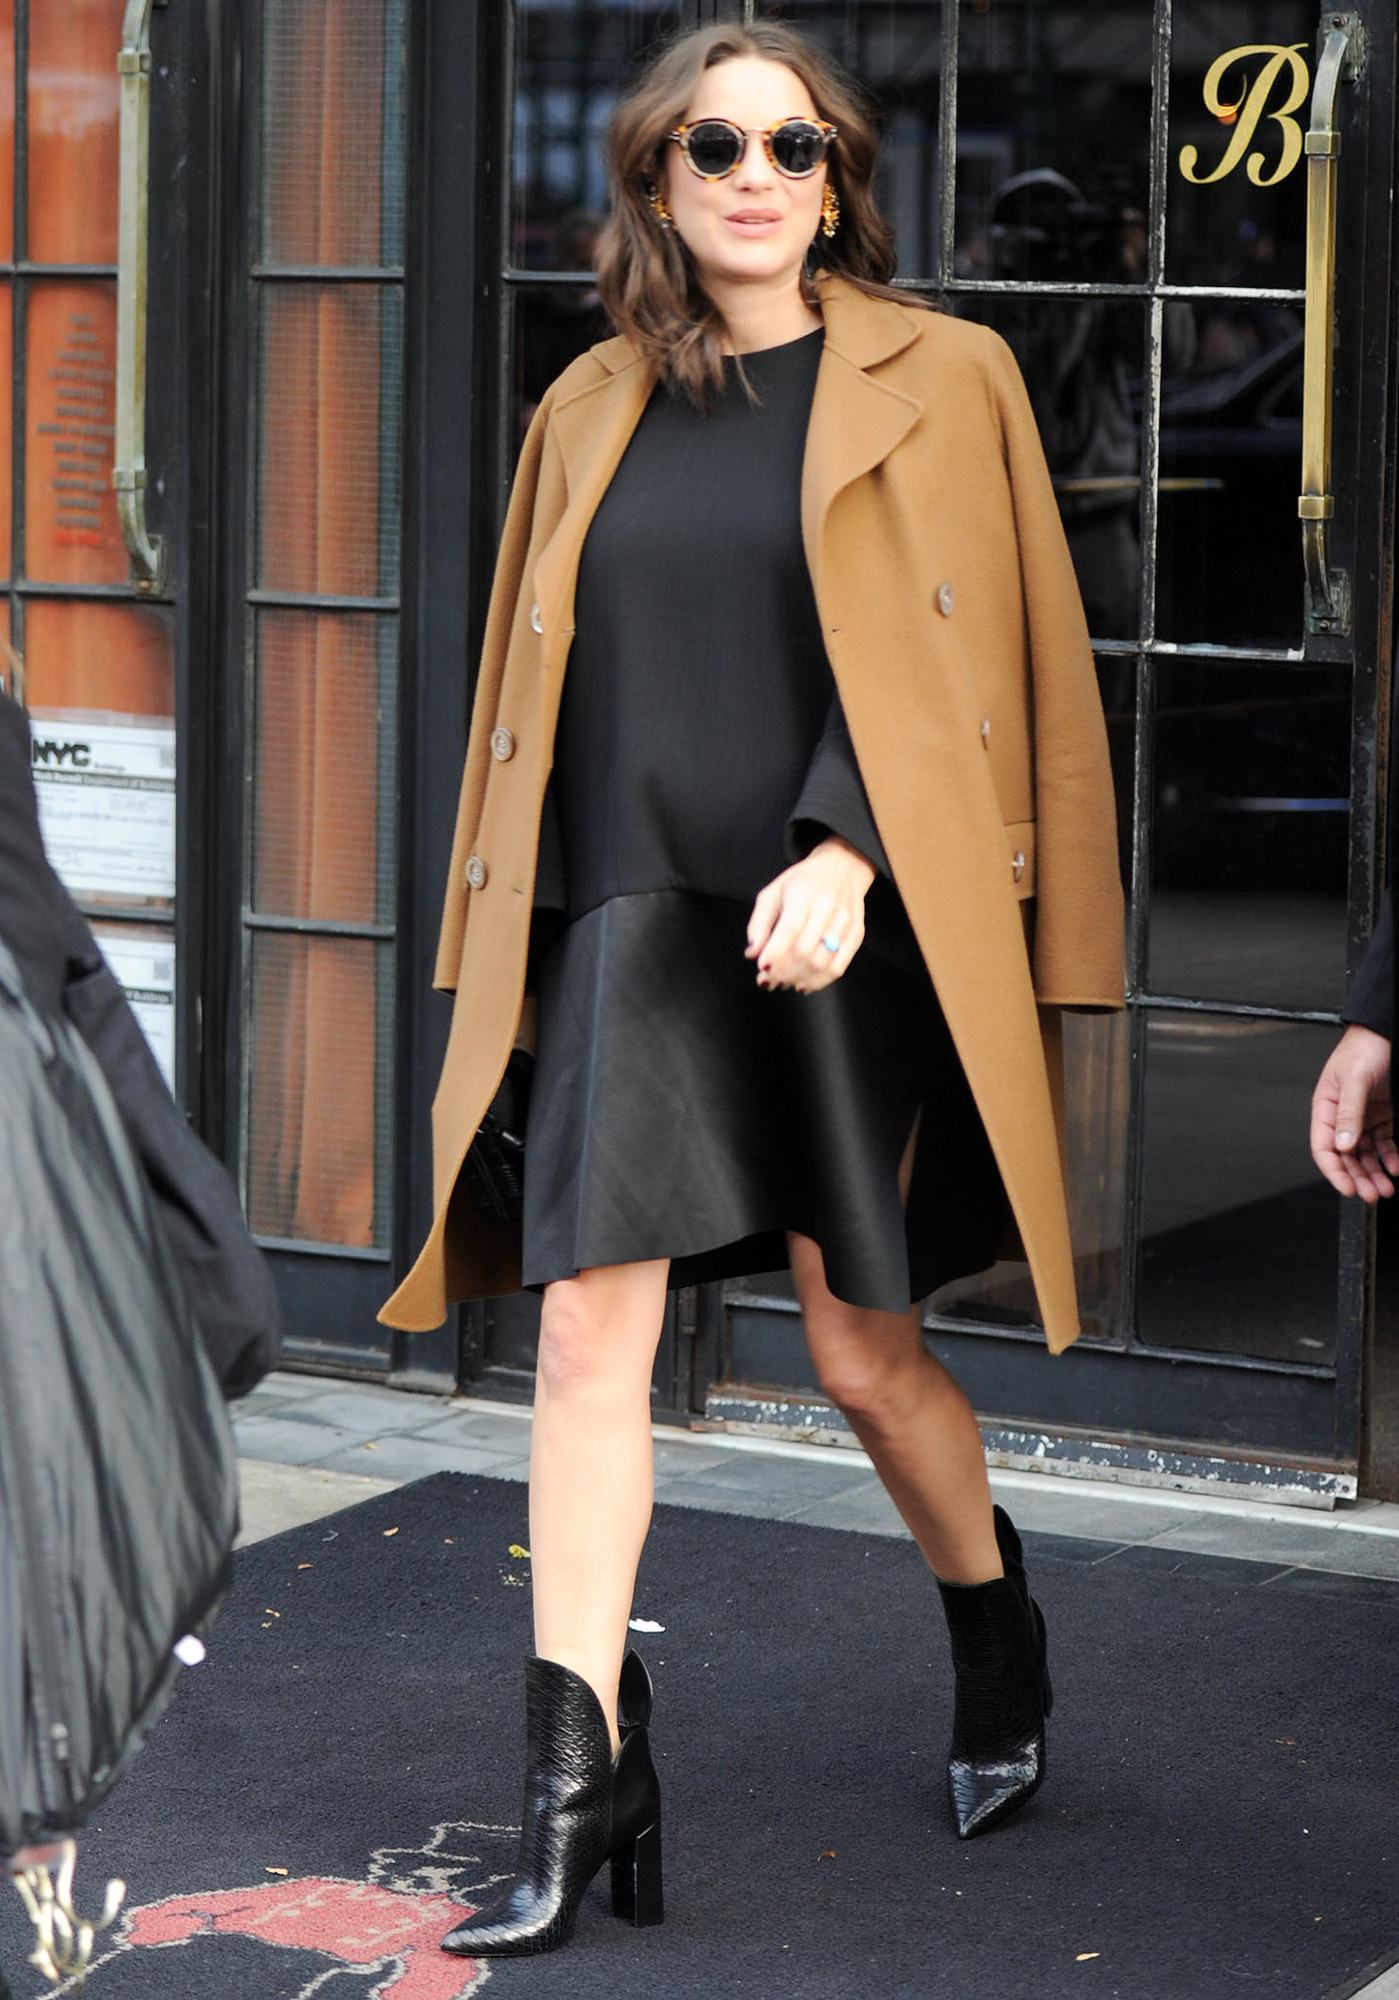 Pregnant Marion Cotillard leaves her hotel in New York City